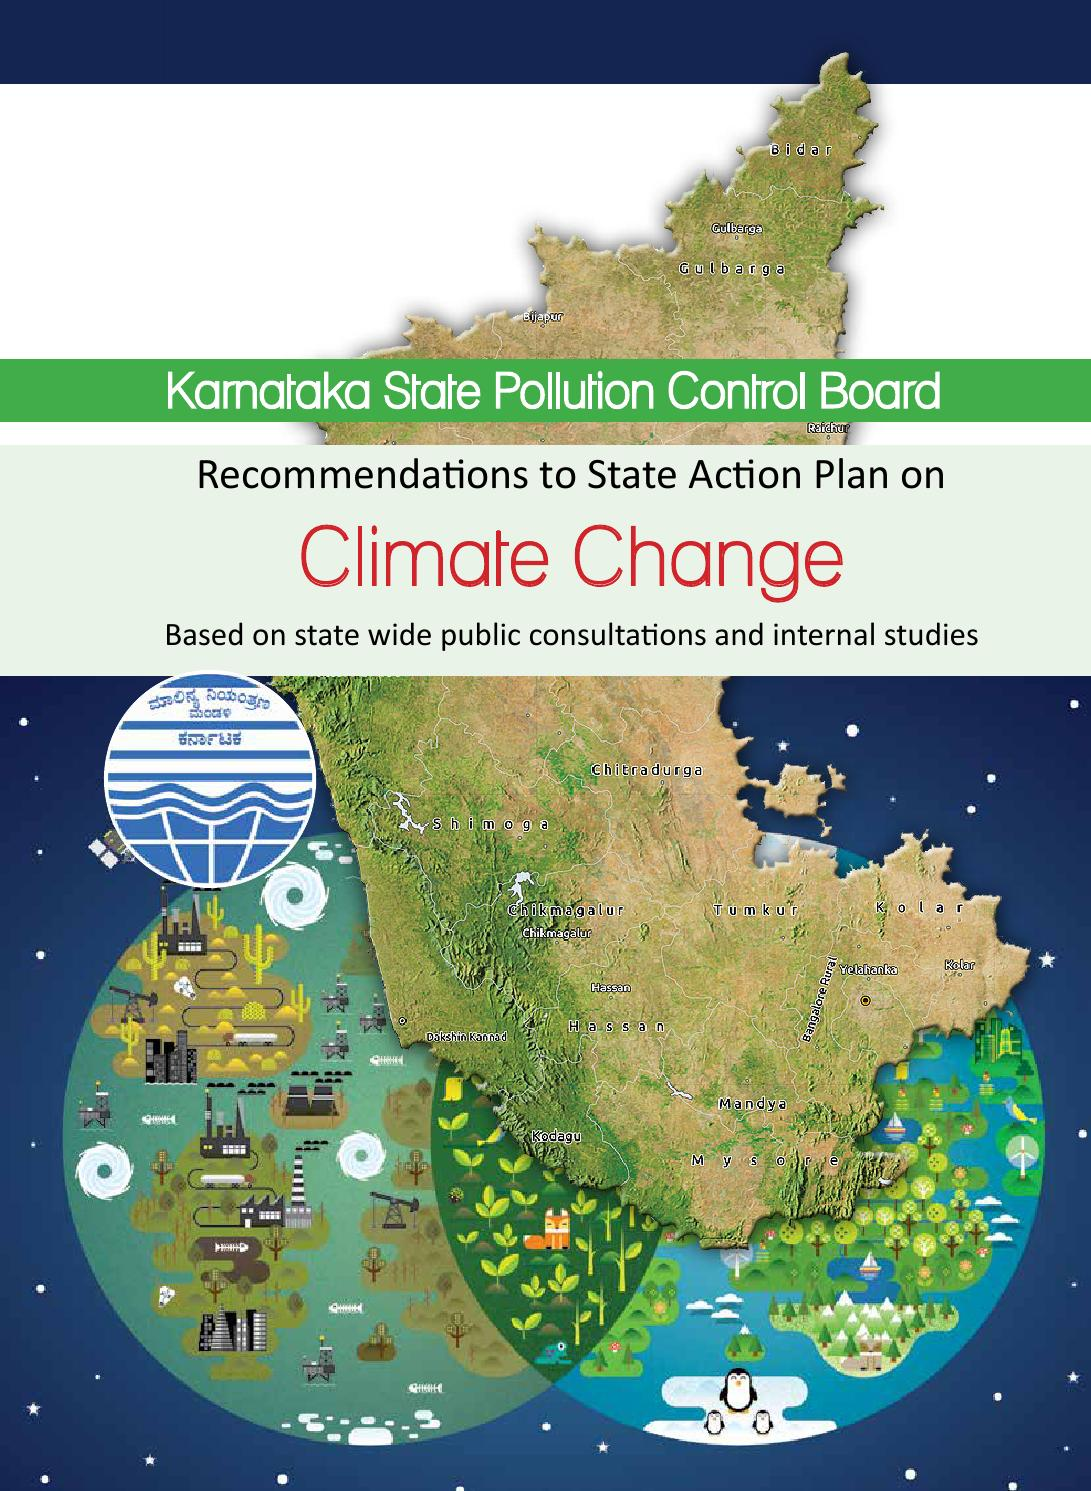 Is there a direct or indirect link between sustainable development and climate change and why?